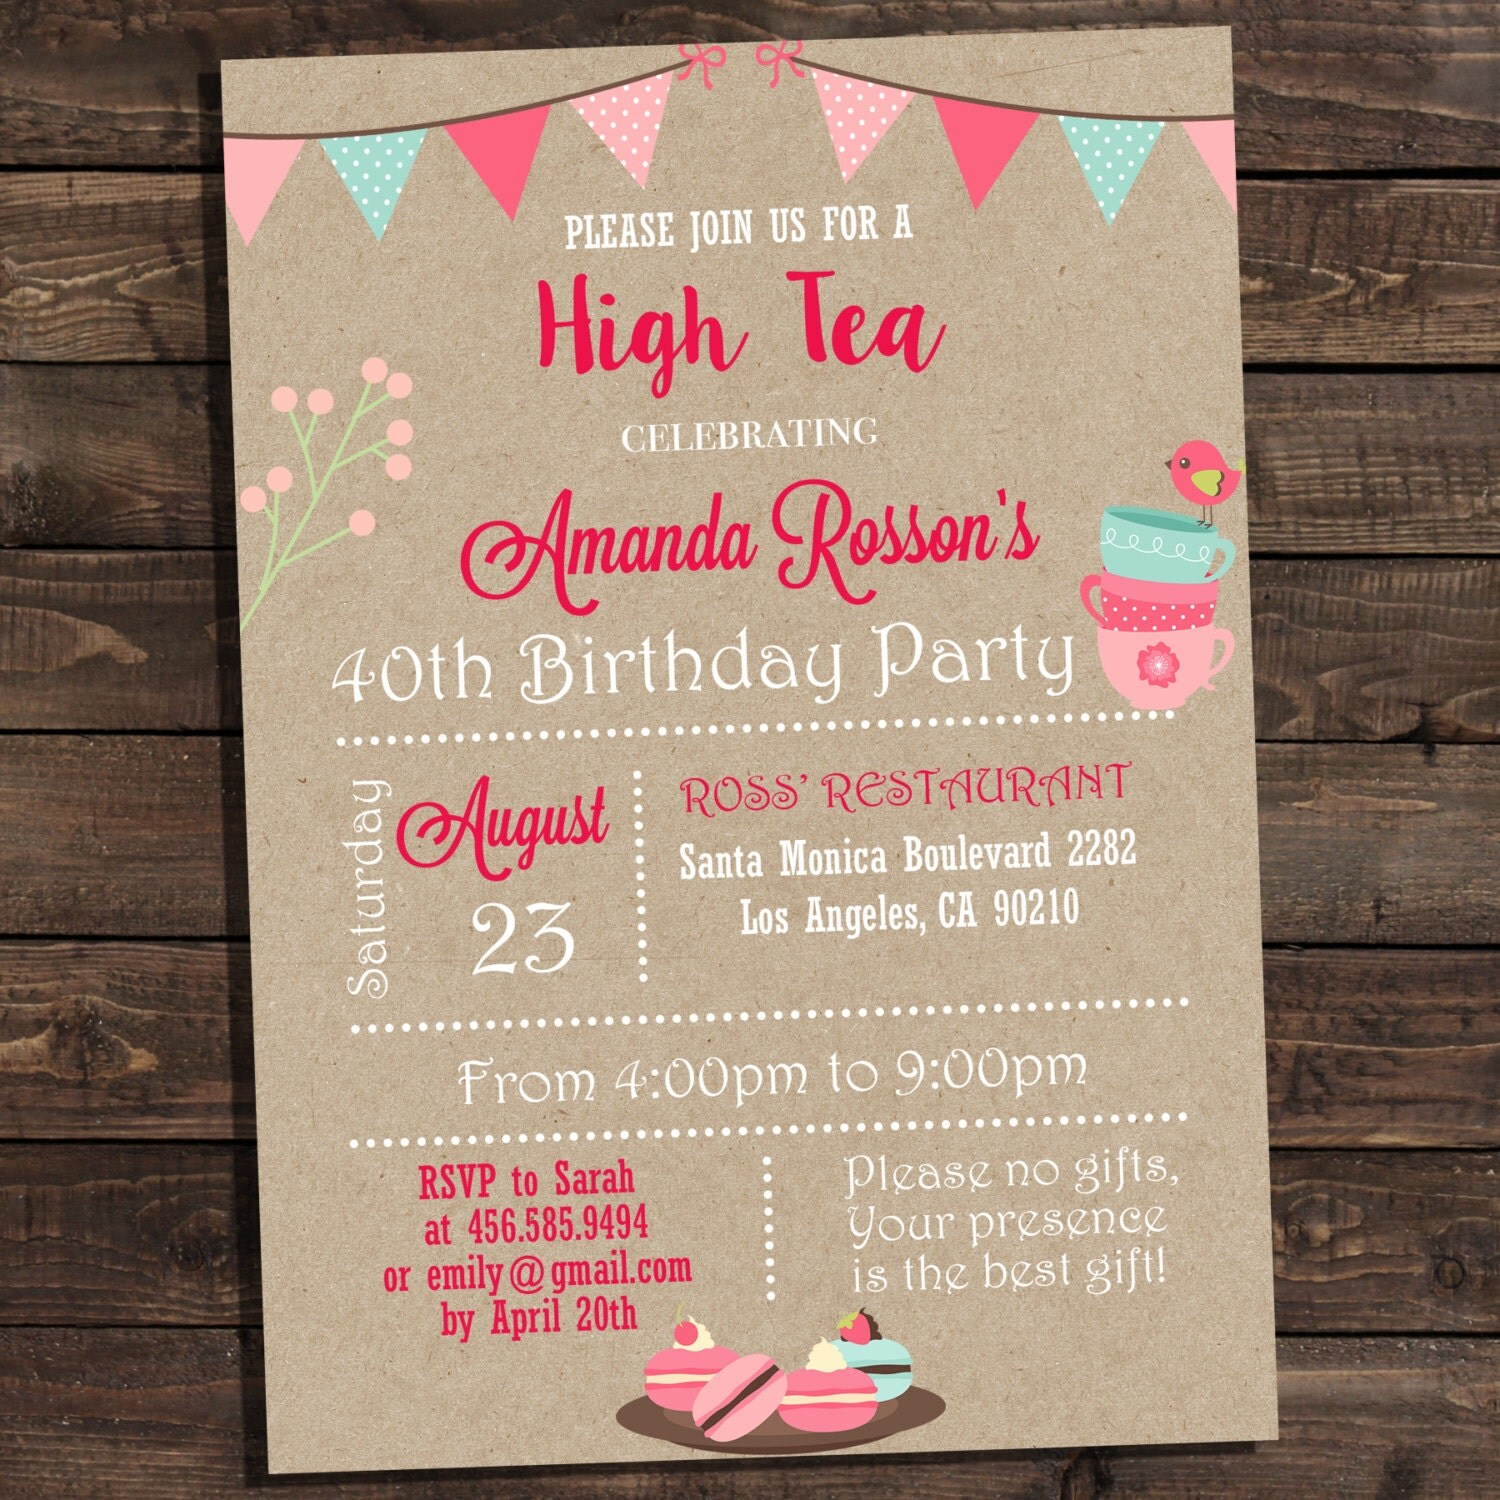 Vintage shabby chic high tea party invitations printable zoom monicamarmolfo Image collections